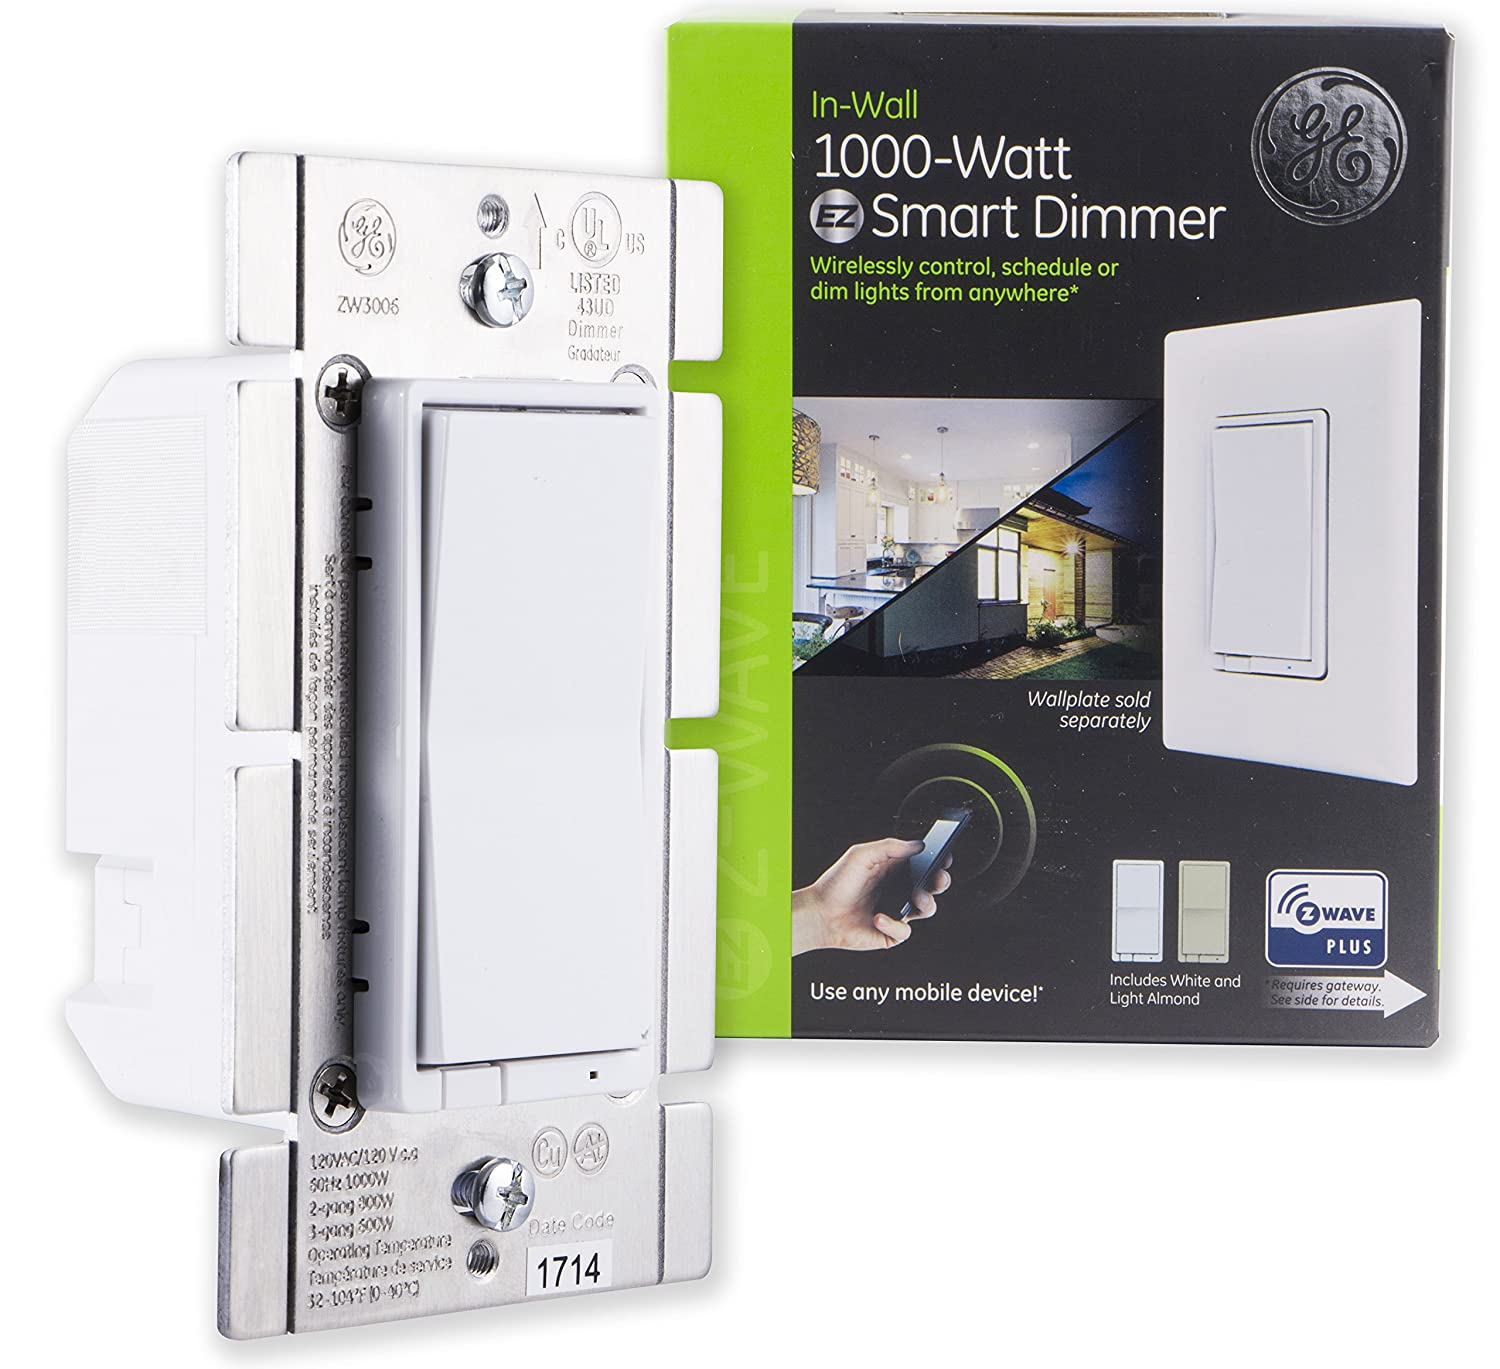 Ge Z Wave Plus 1 000 Watt Incandescent Halogen Bulbs Only In Wall Fitting Dimmer Switch To Old Electrical Wiringdimmerinstructionsjpg White Light Almond Paddles Zwave Hub Required Works With Smartthings Wink Alexa 14299 1000w Smart Multi